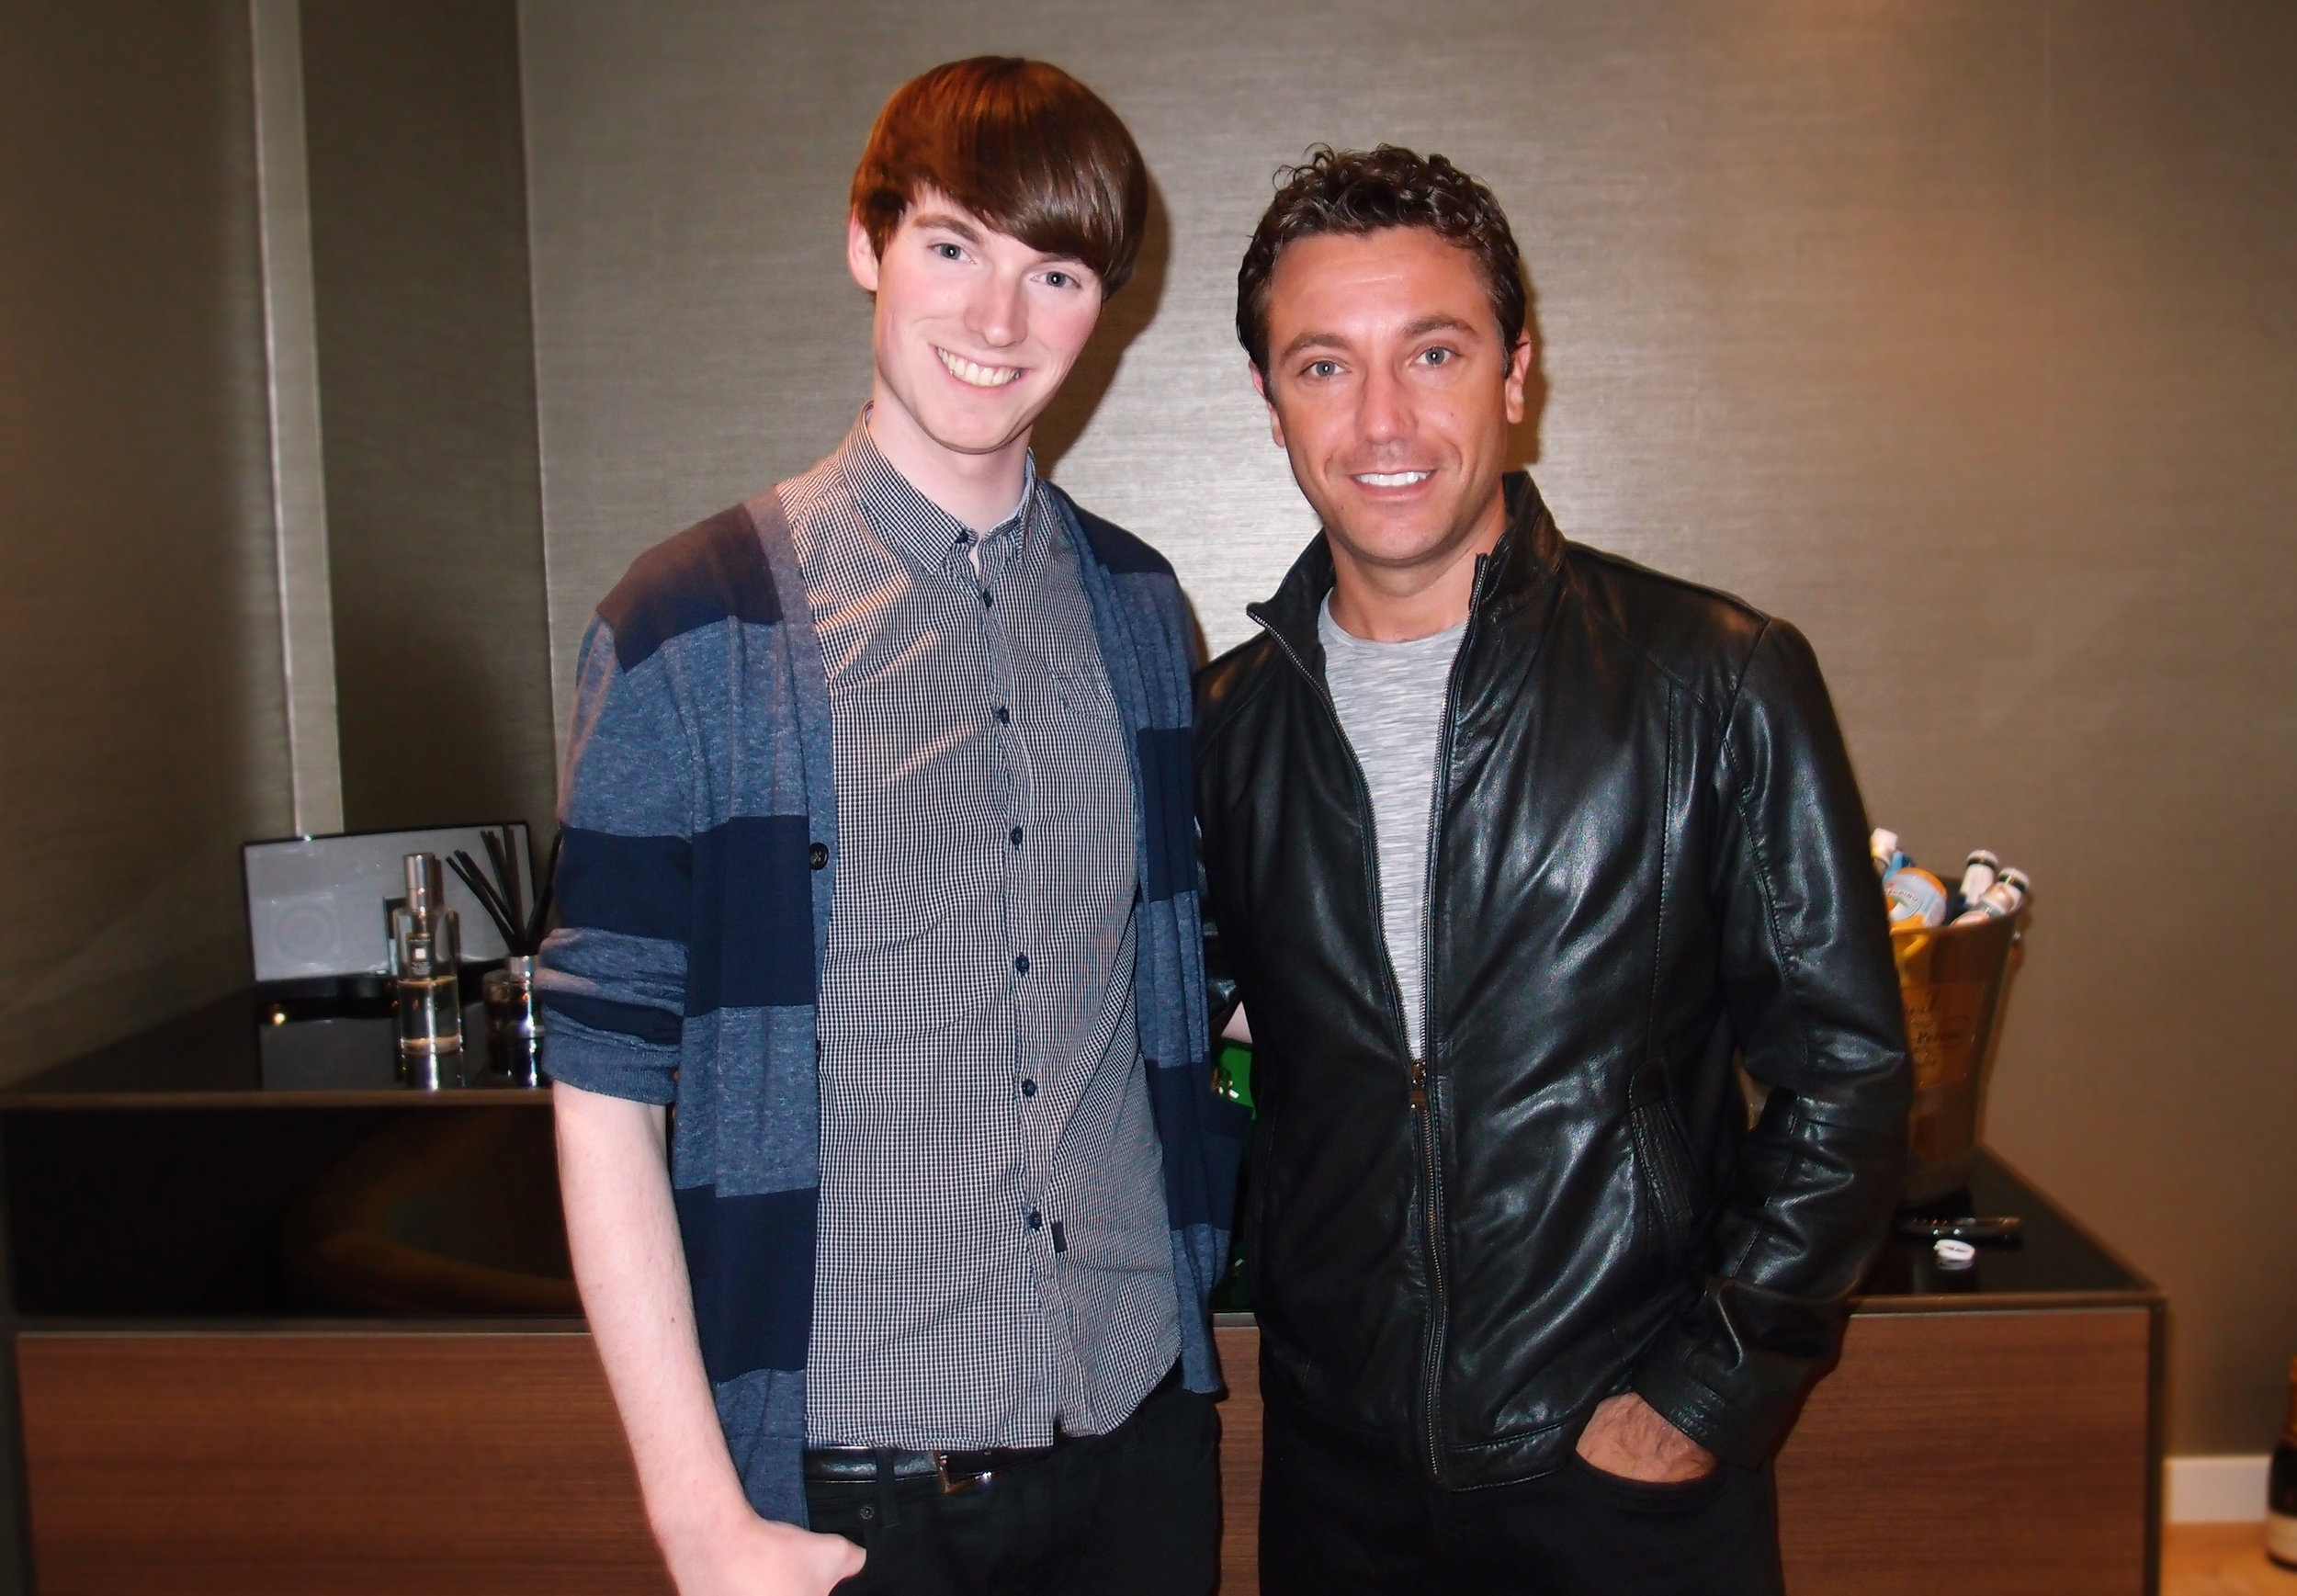 Richard Brownlie-Marshall & Gino D'Acampo